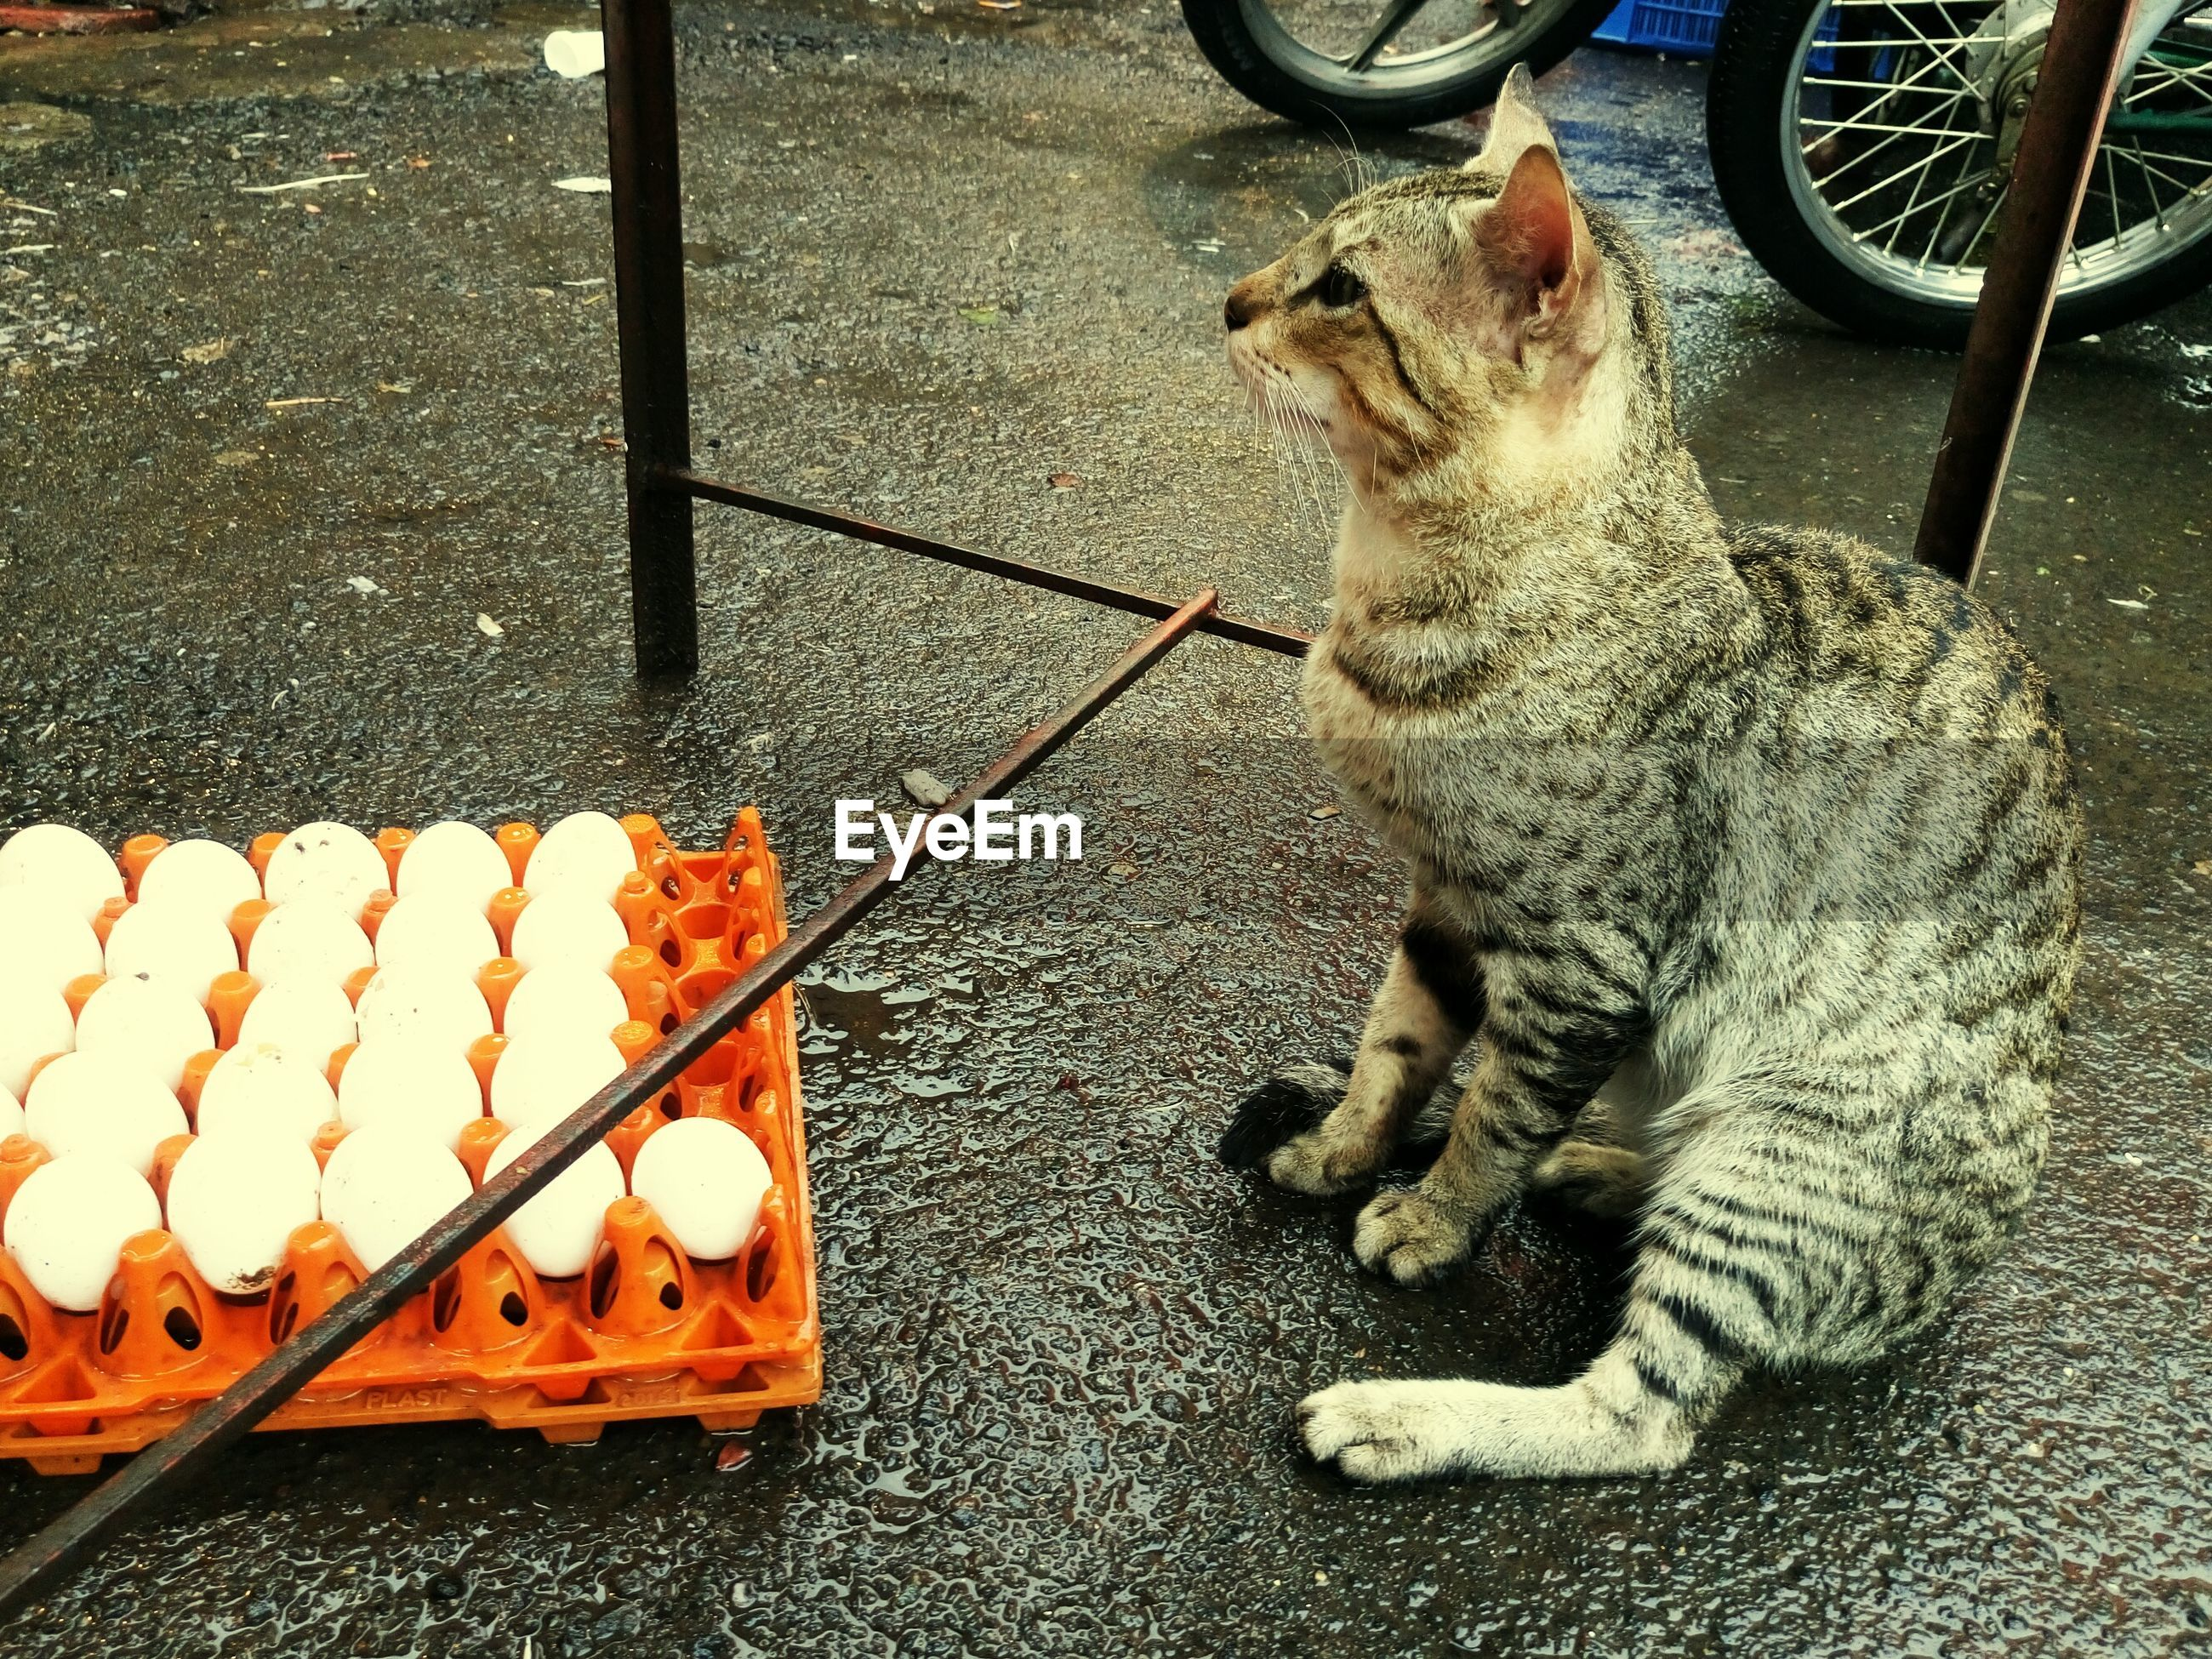 High angle view of cat by egg crate on wet road